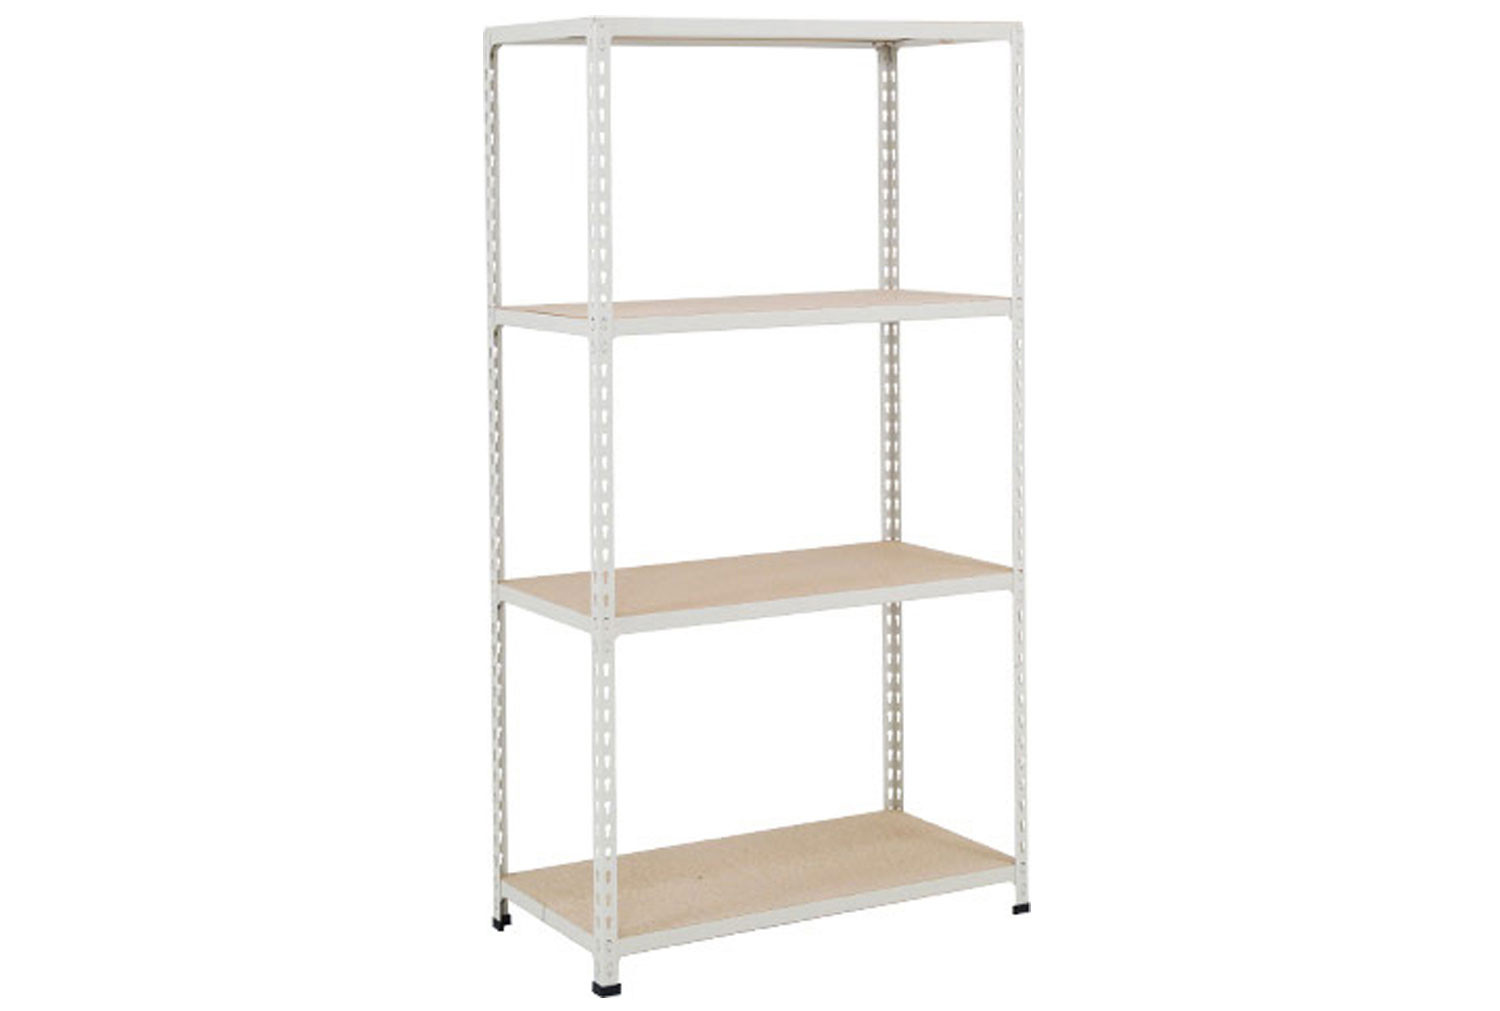 Rapid 2 Shelving With 4 Chipboard Shelves 1220wx1600h (Grey)